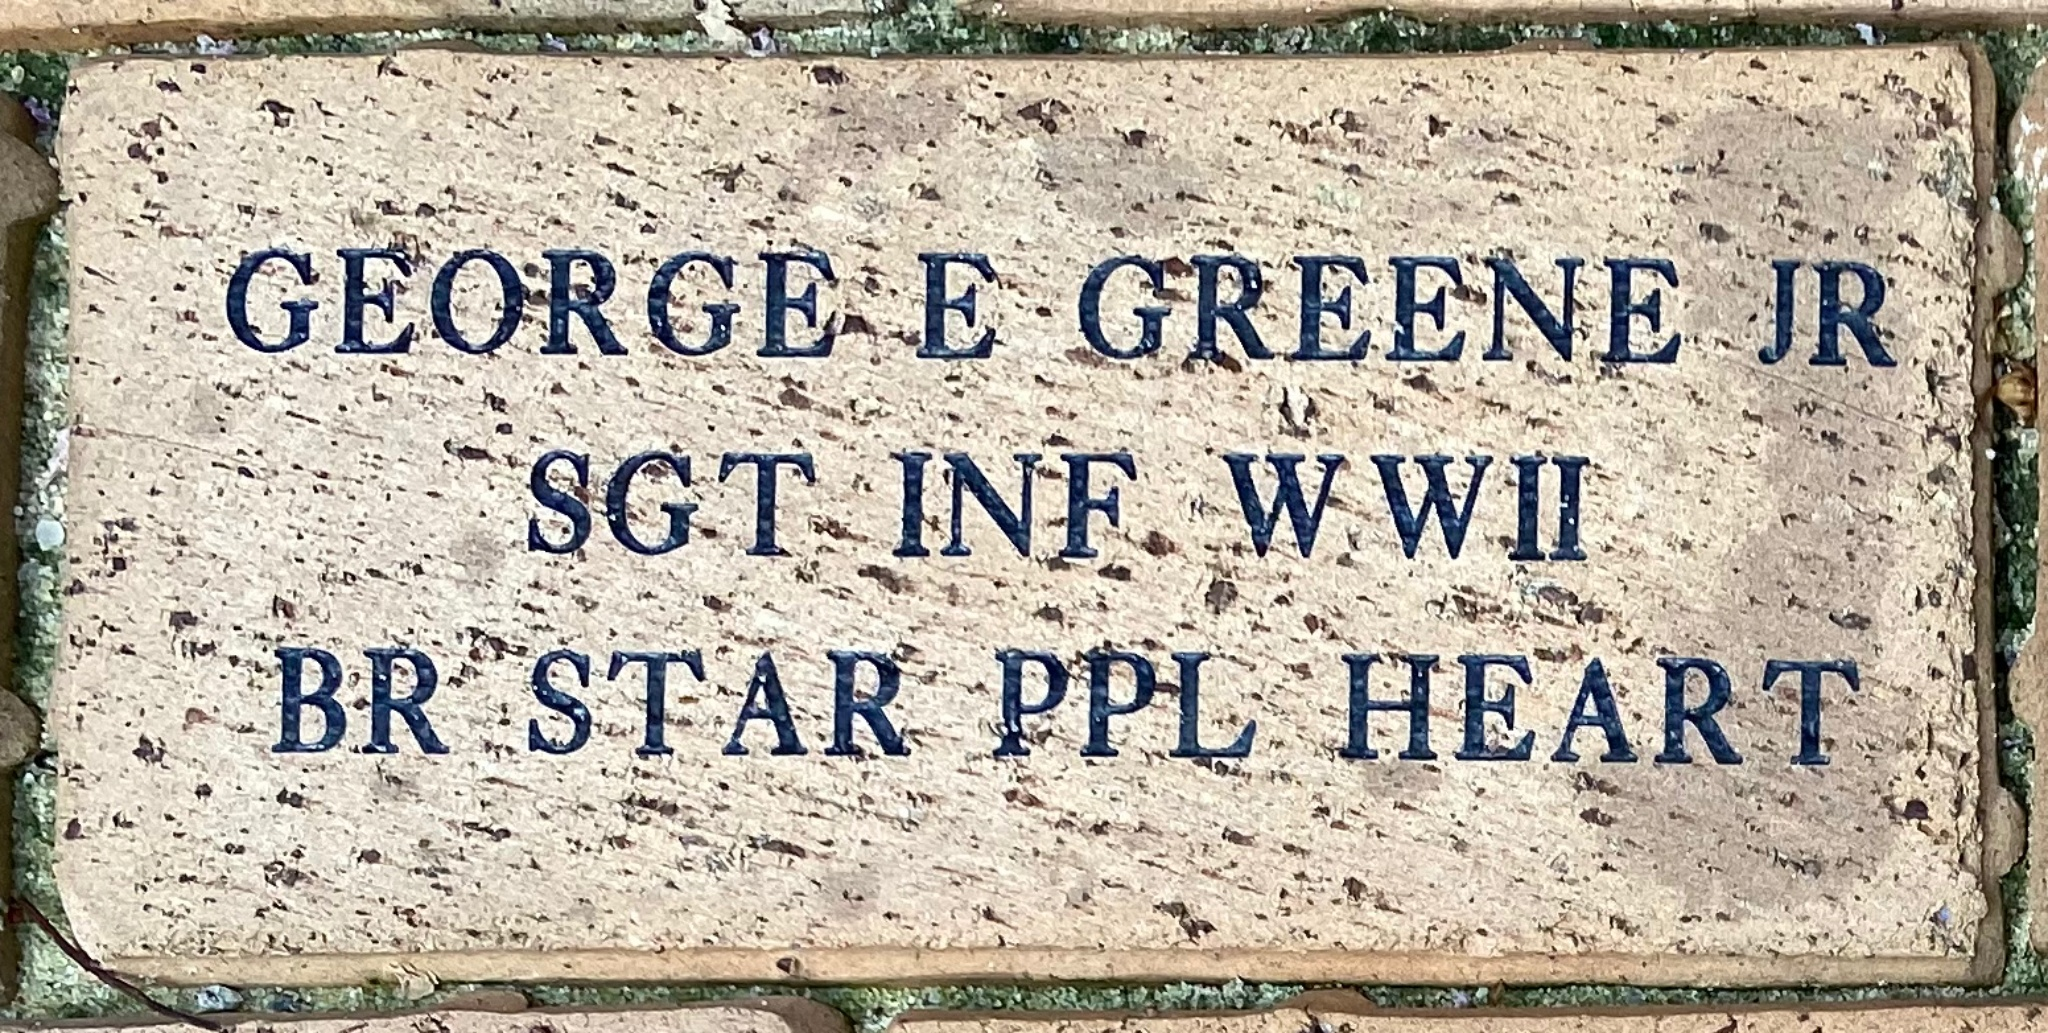 GEORGE E GREENE JR SGT INF WWII BR STAR PPL HEART